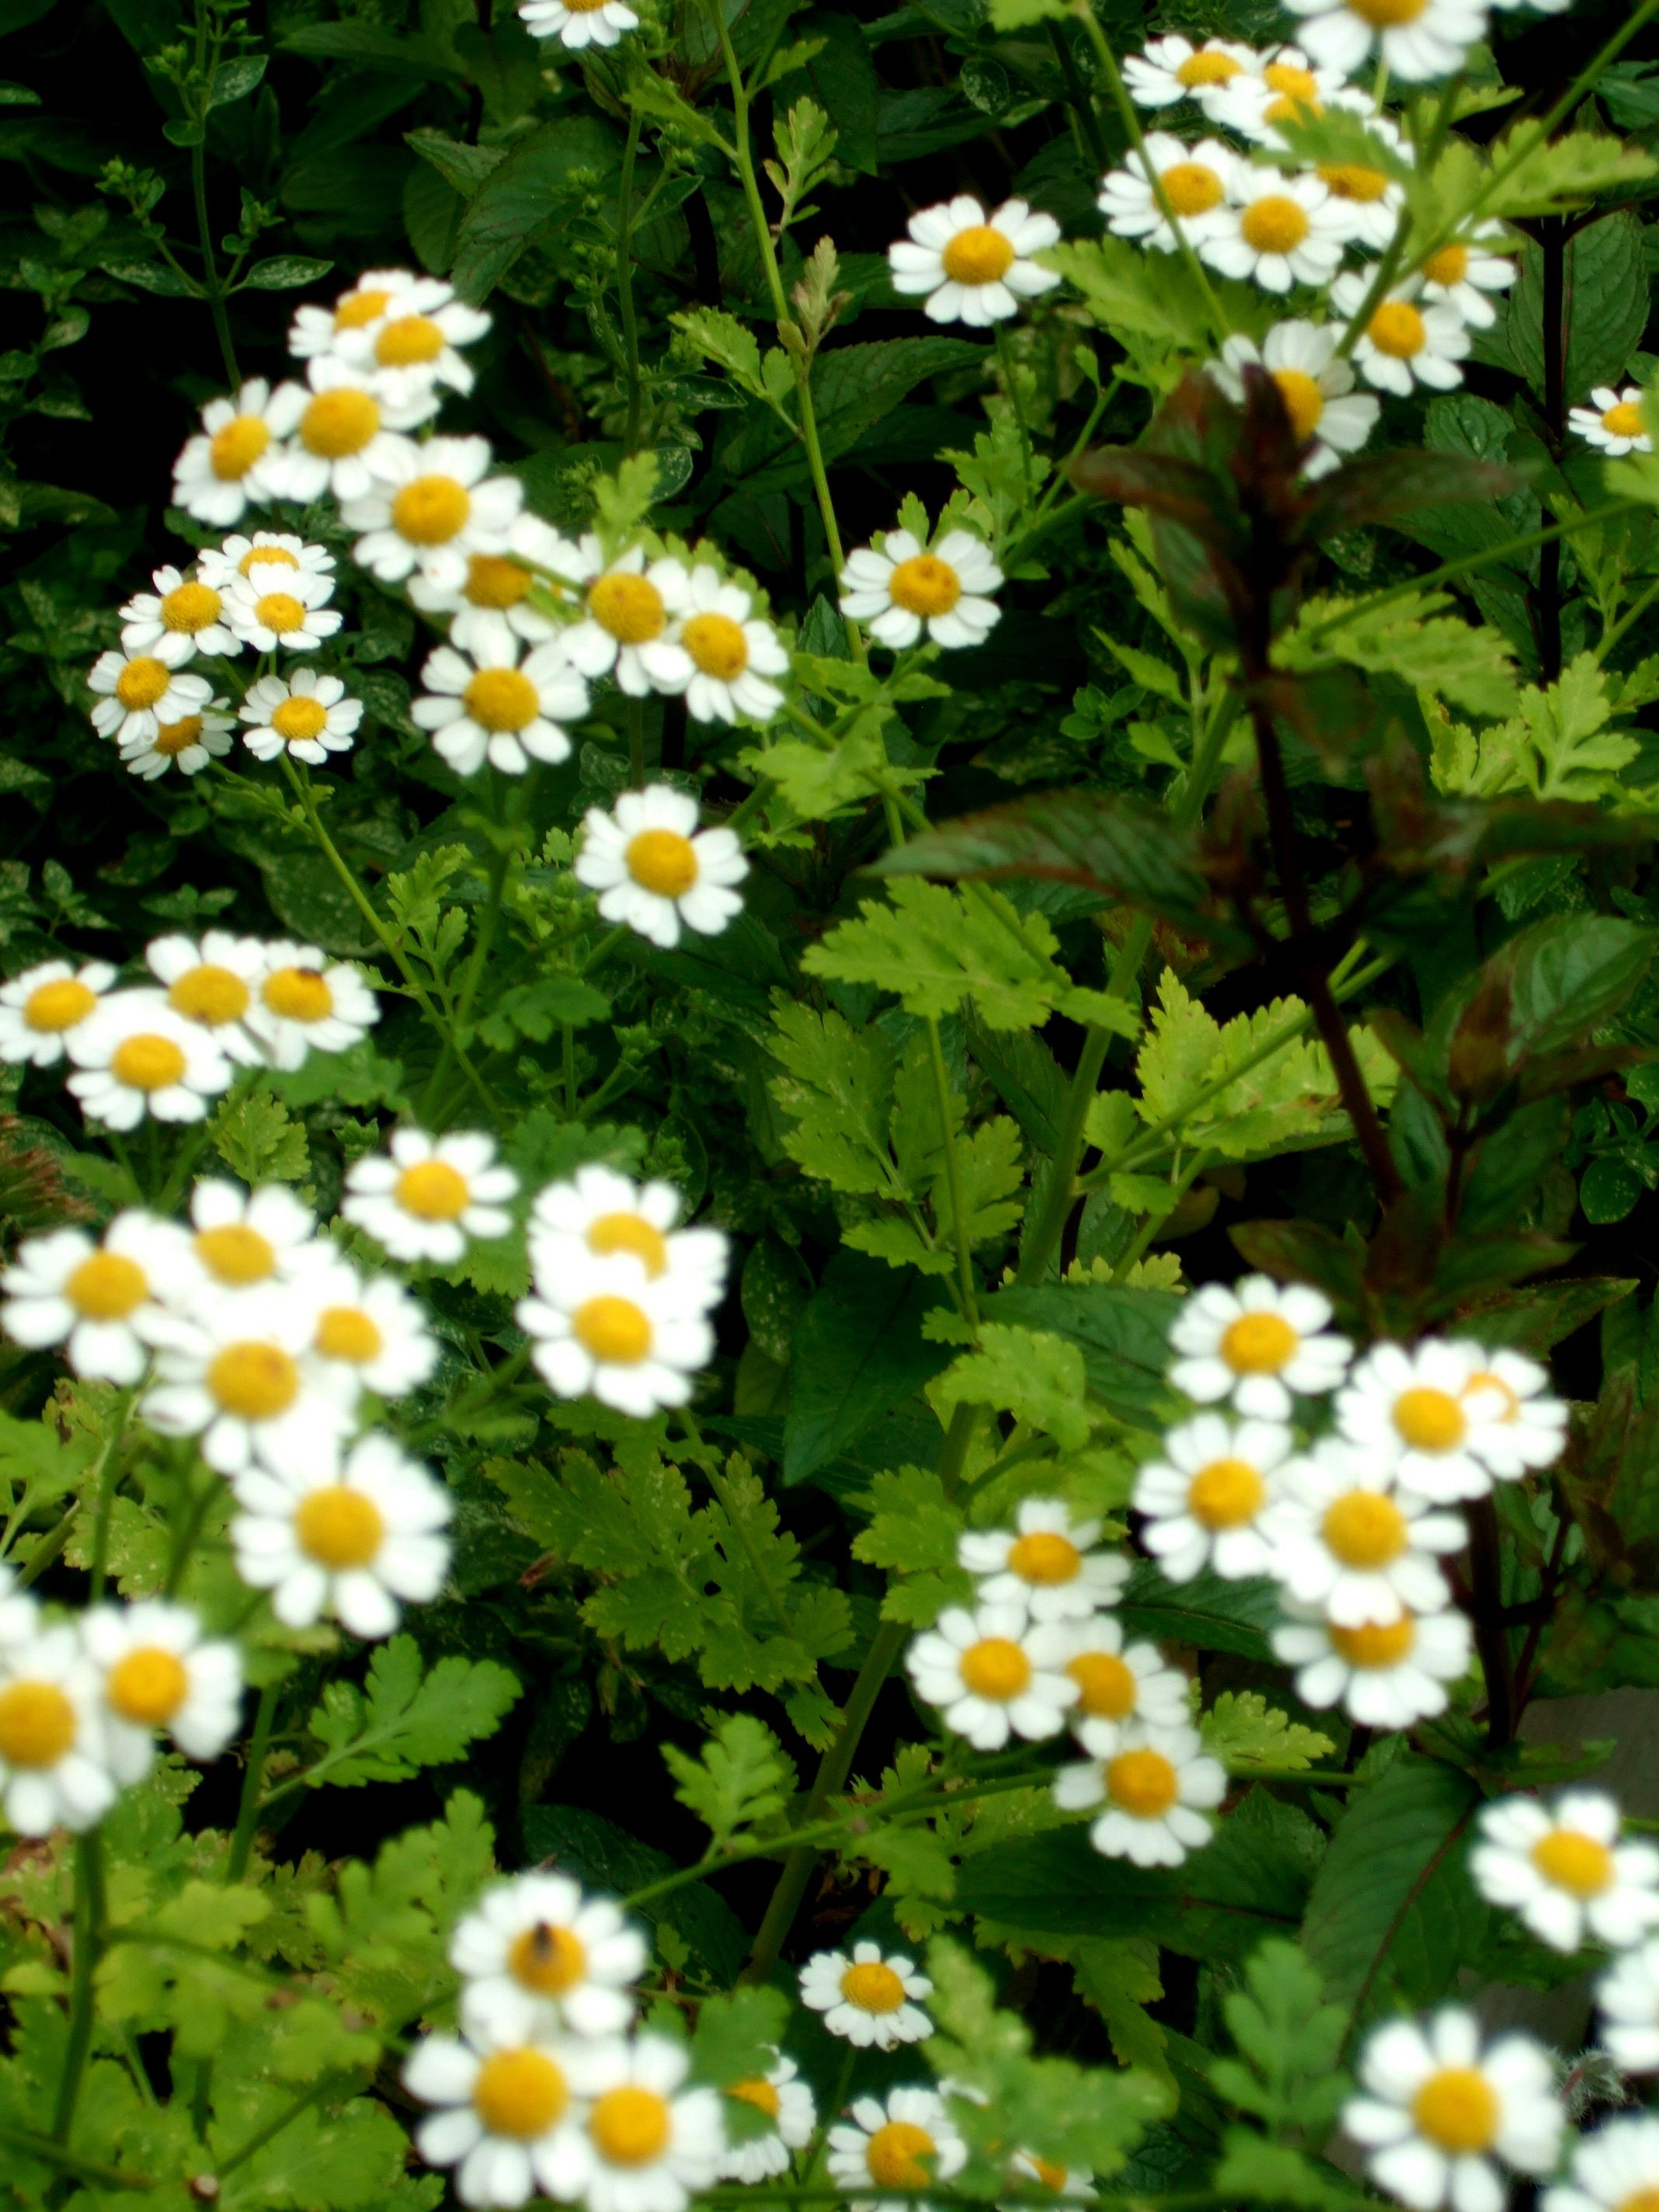 Feverfew A Perennial That You Can Plant In Your Yard Or Pot And Use To Treat Migraines Plants Pnw Garden Plant Identification